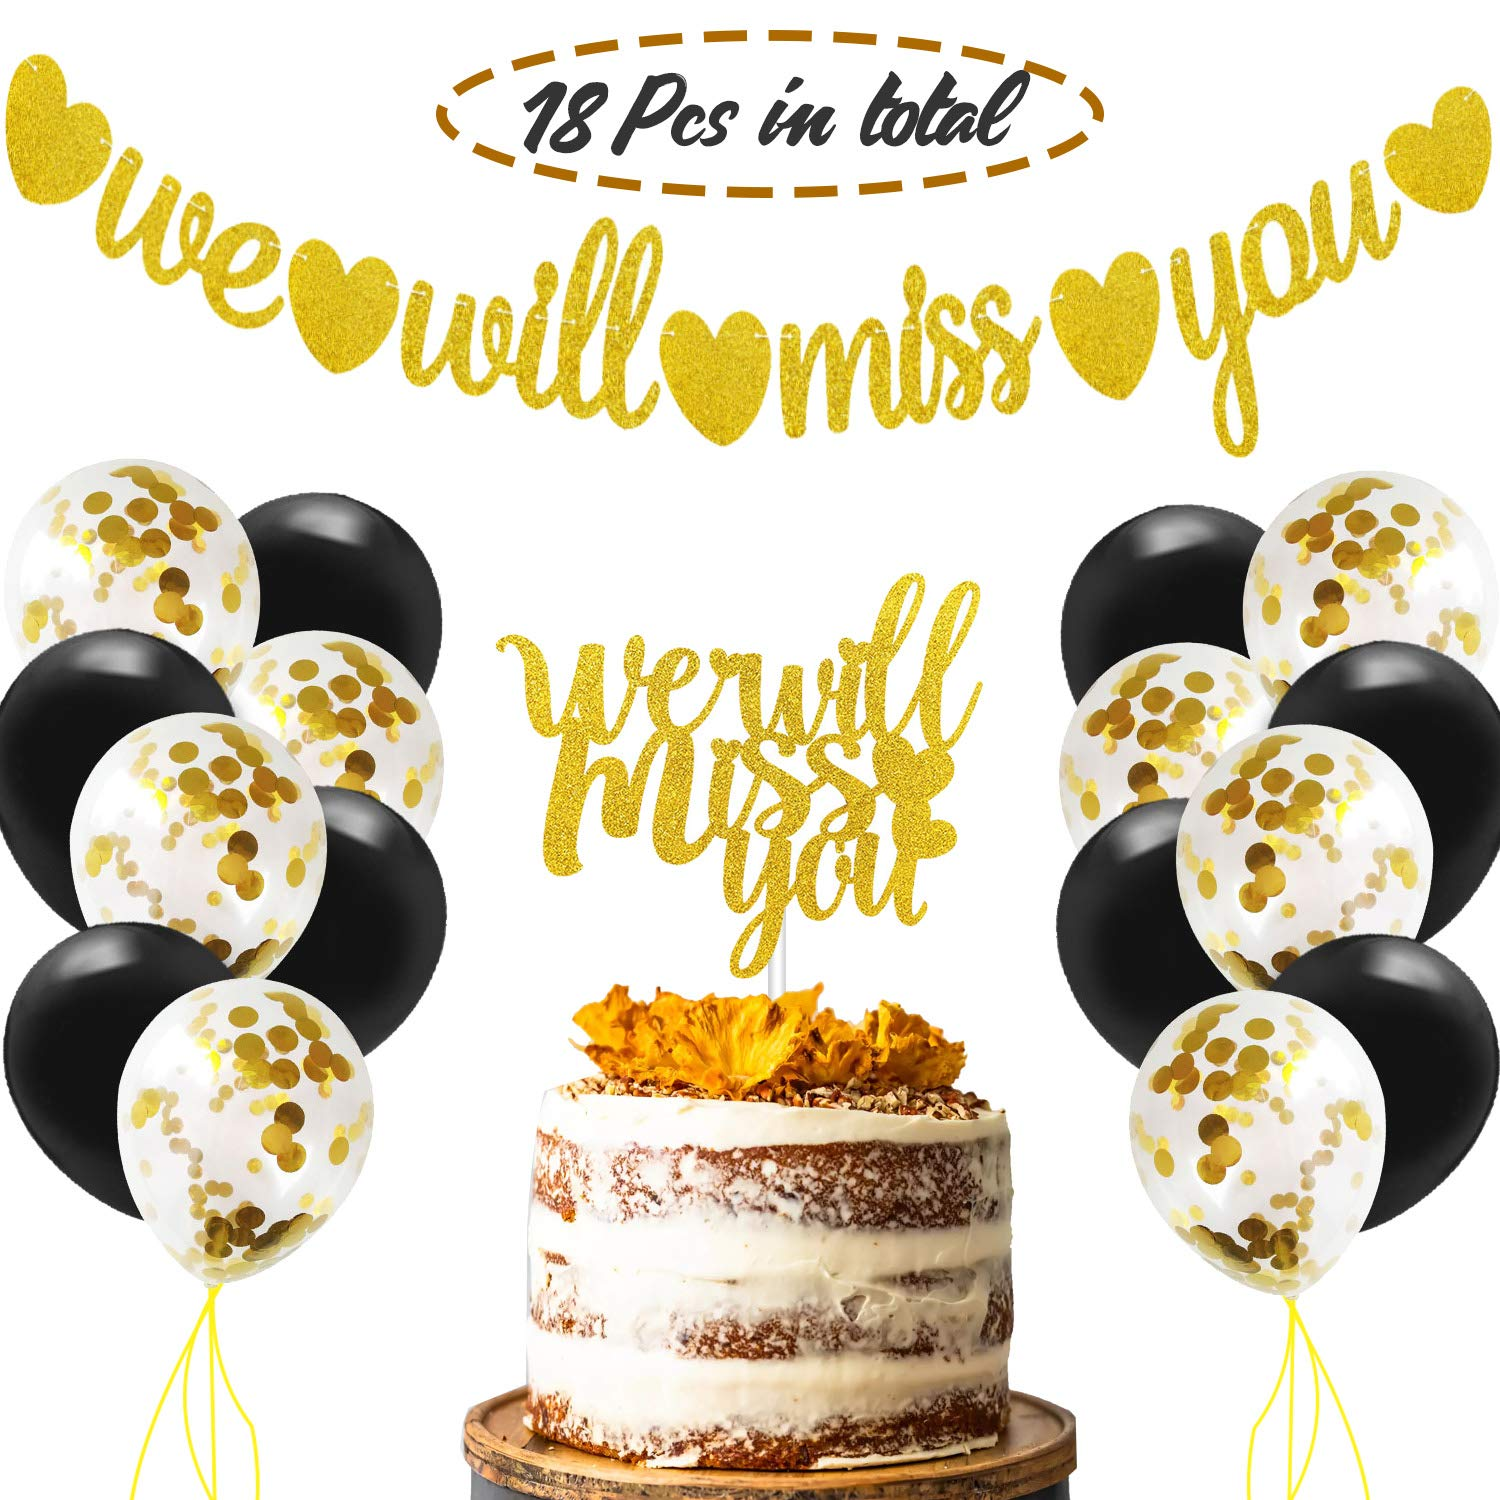 We Will Miss You Bunting Banner & Cake Topper Gold Glitter Party Decorations with Balloons Kit for Retirement Going Away Farewell Job Change Graduation Wedding Party Supplies